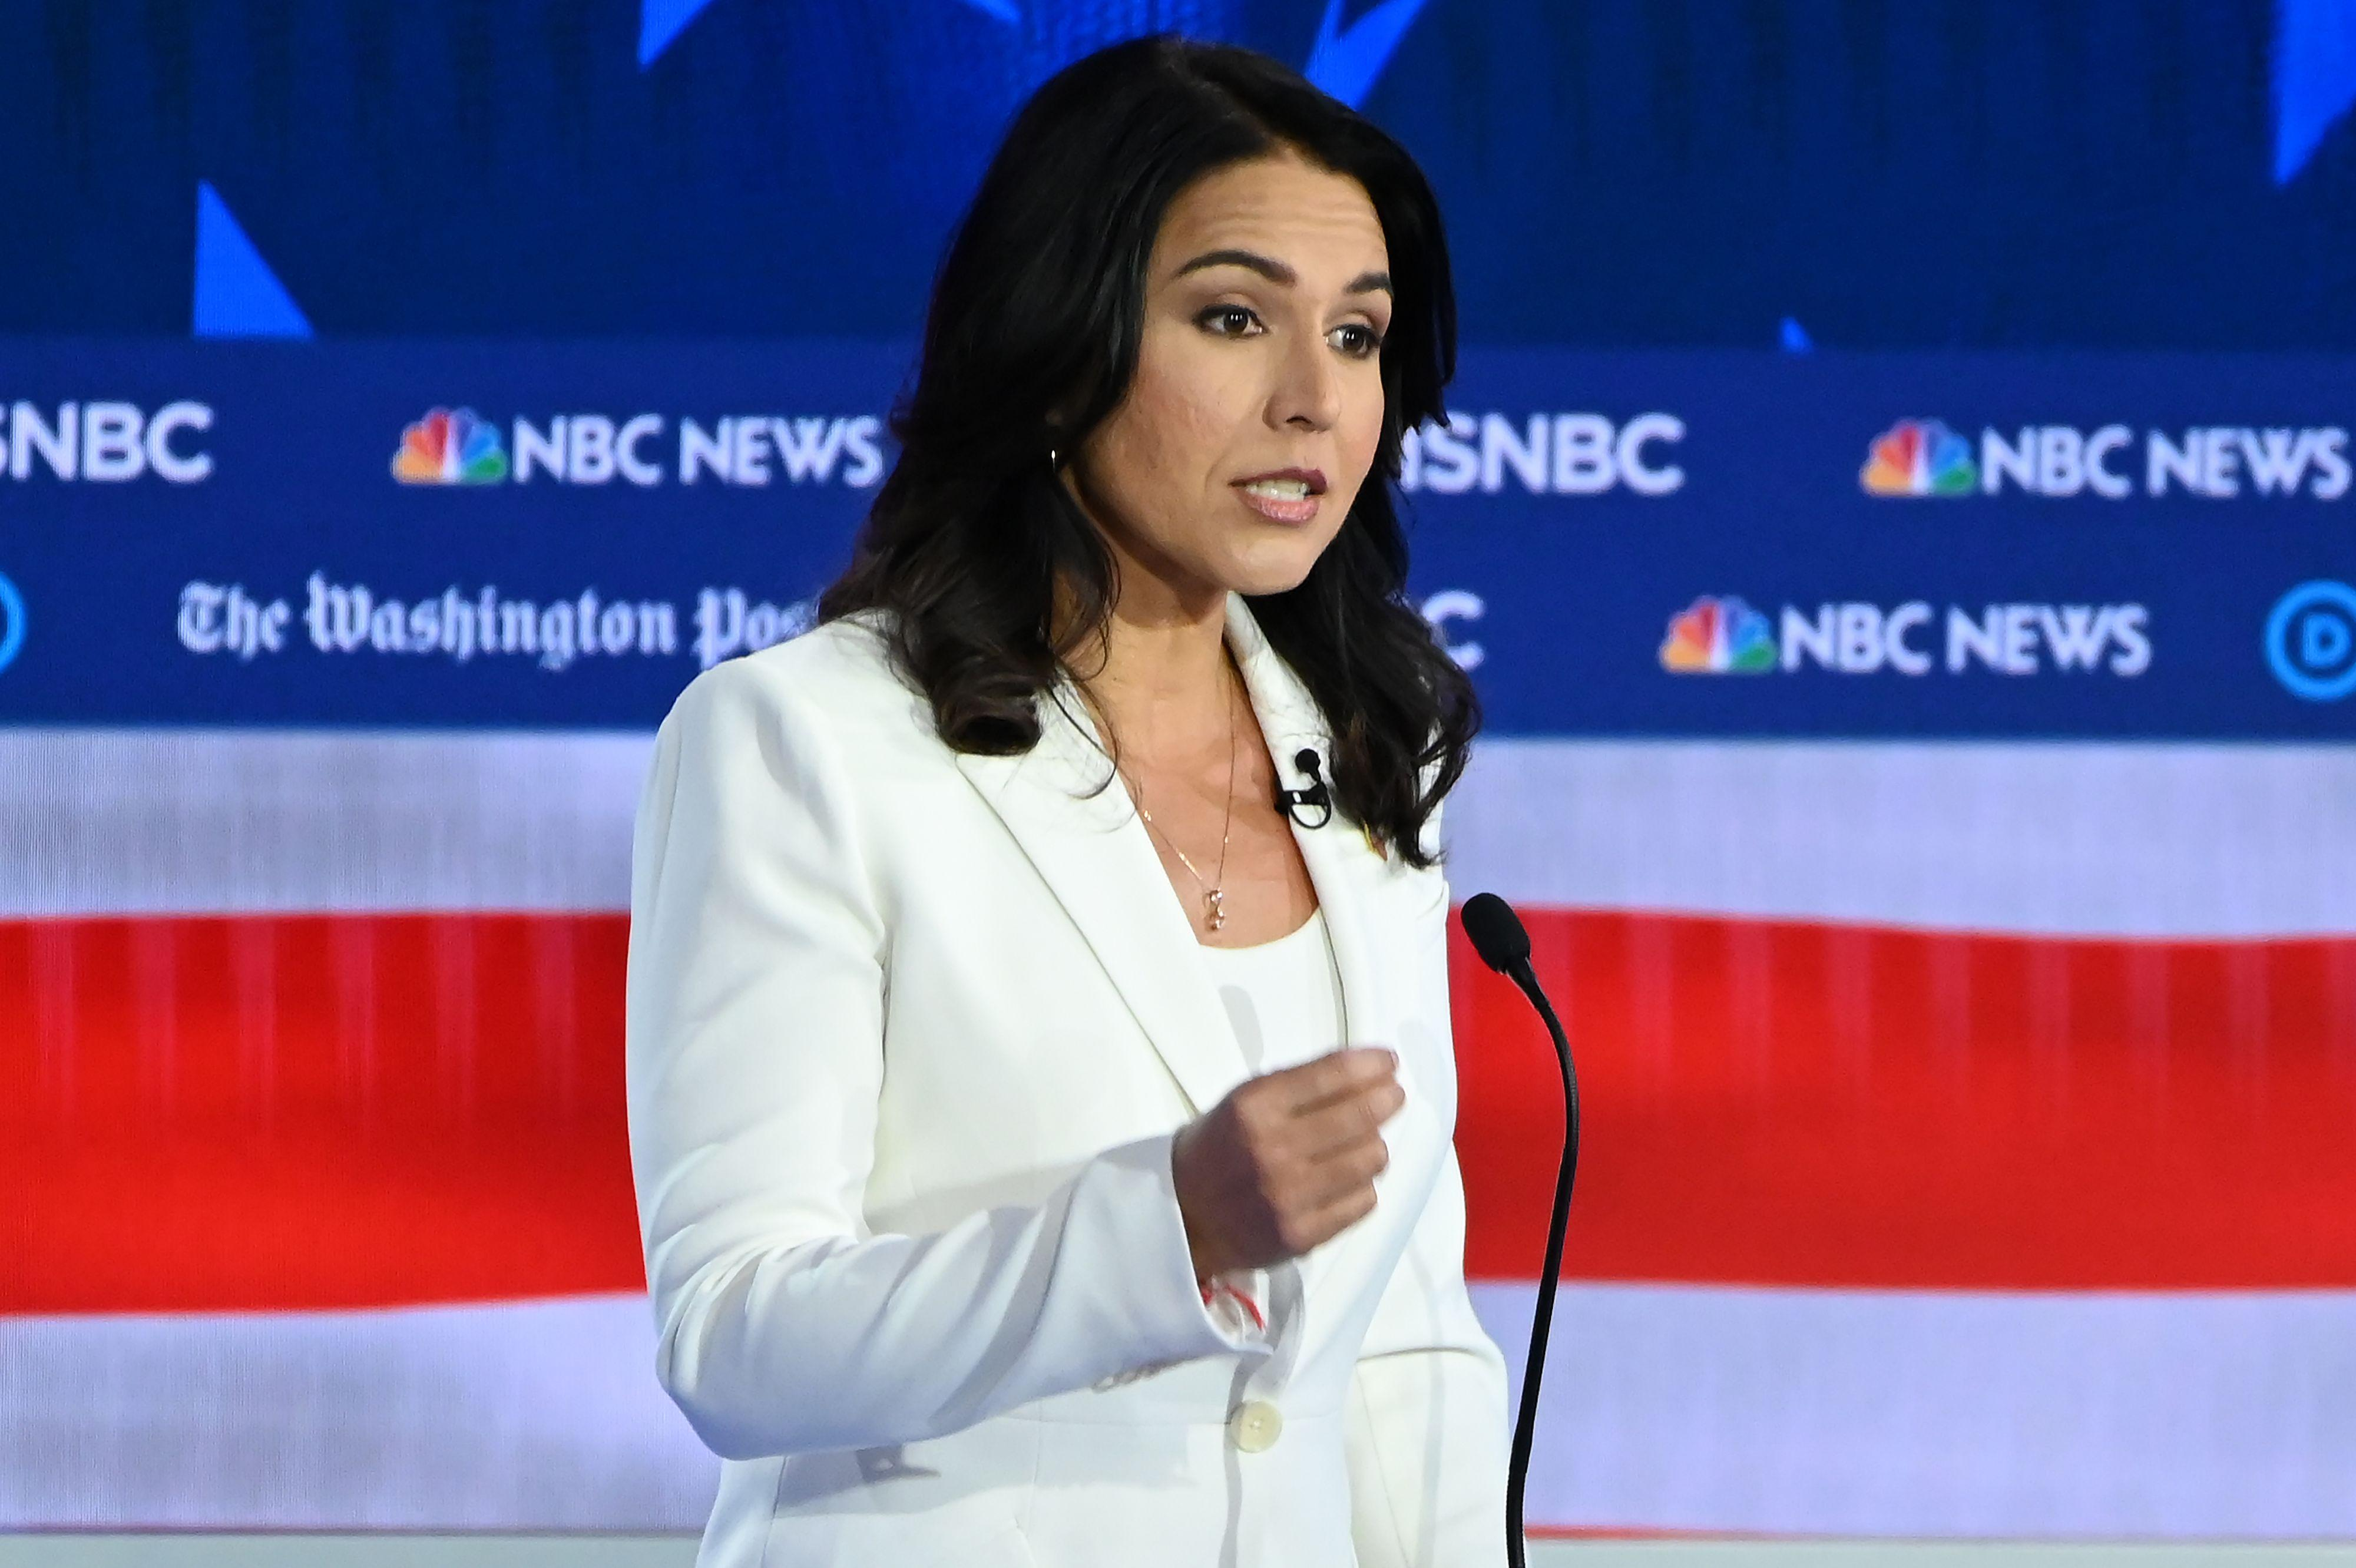 climate-change-democratic-debate-november-tulsi-gabbard-1574358826858.jpg